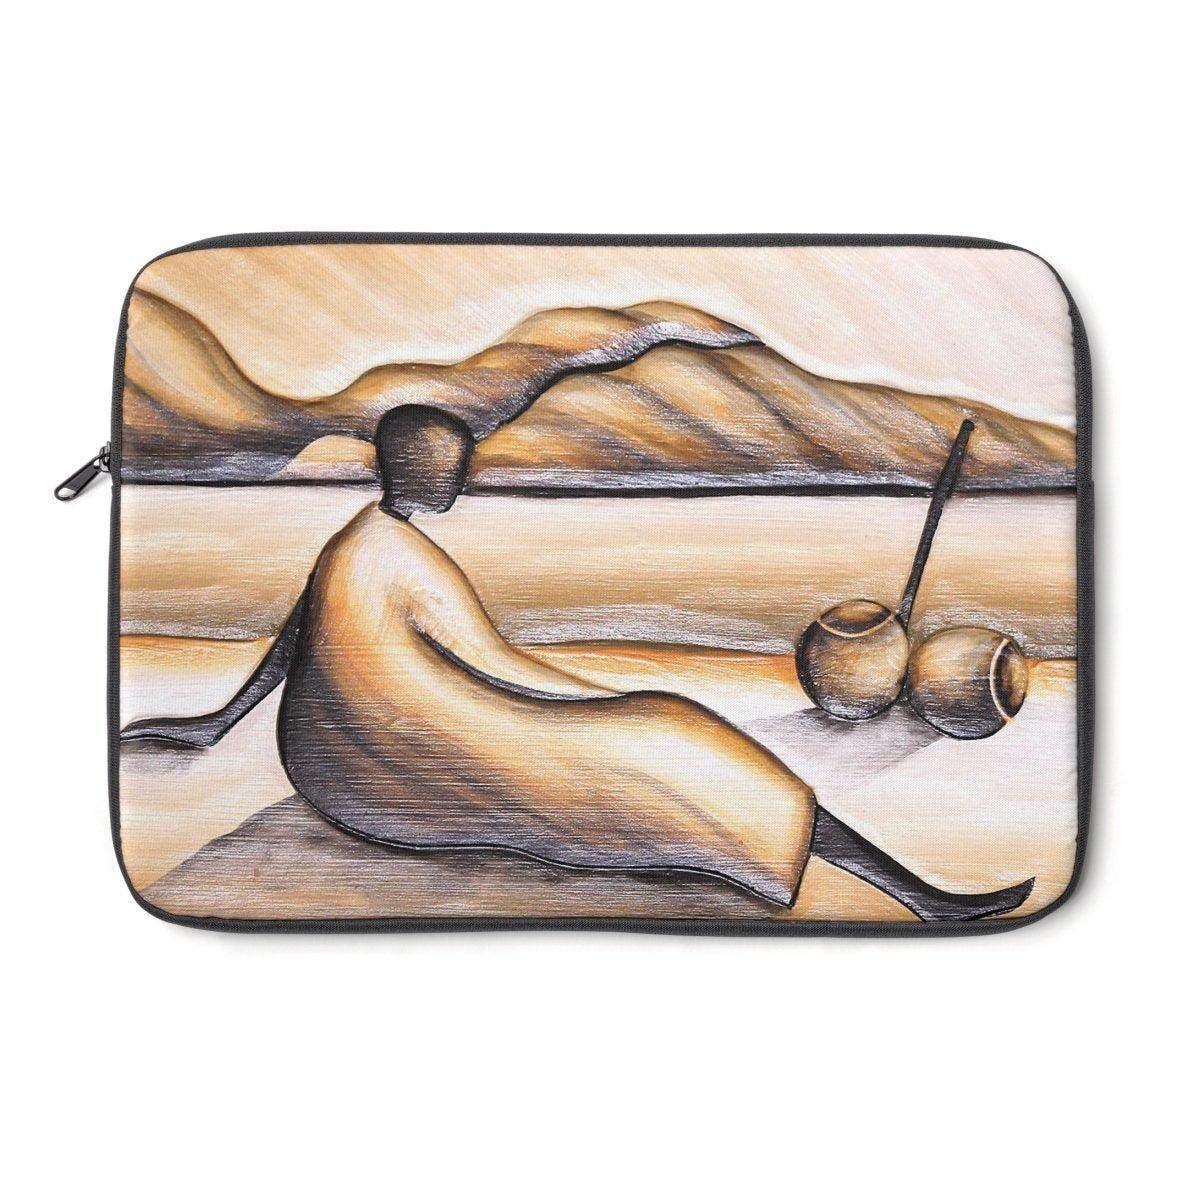 African | Safari | landscape Laptop Sleeve-Tech - Accessories - Laptop Sleeves-Maison d'Elite-Très Elite